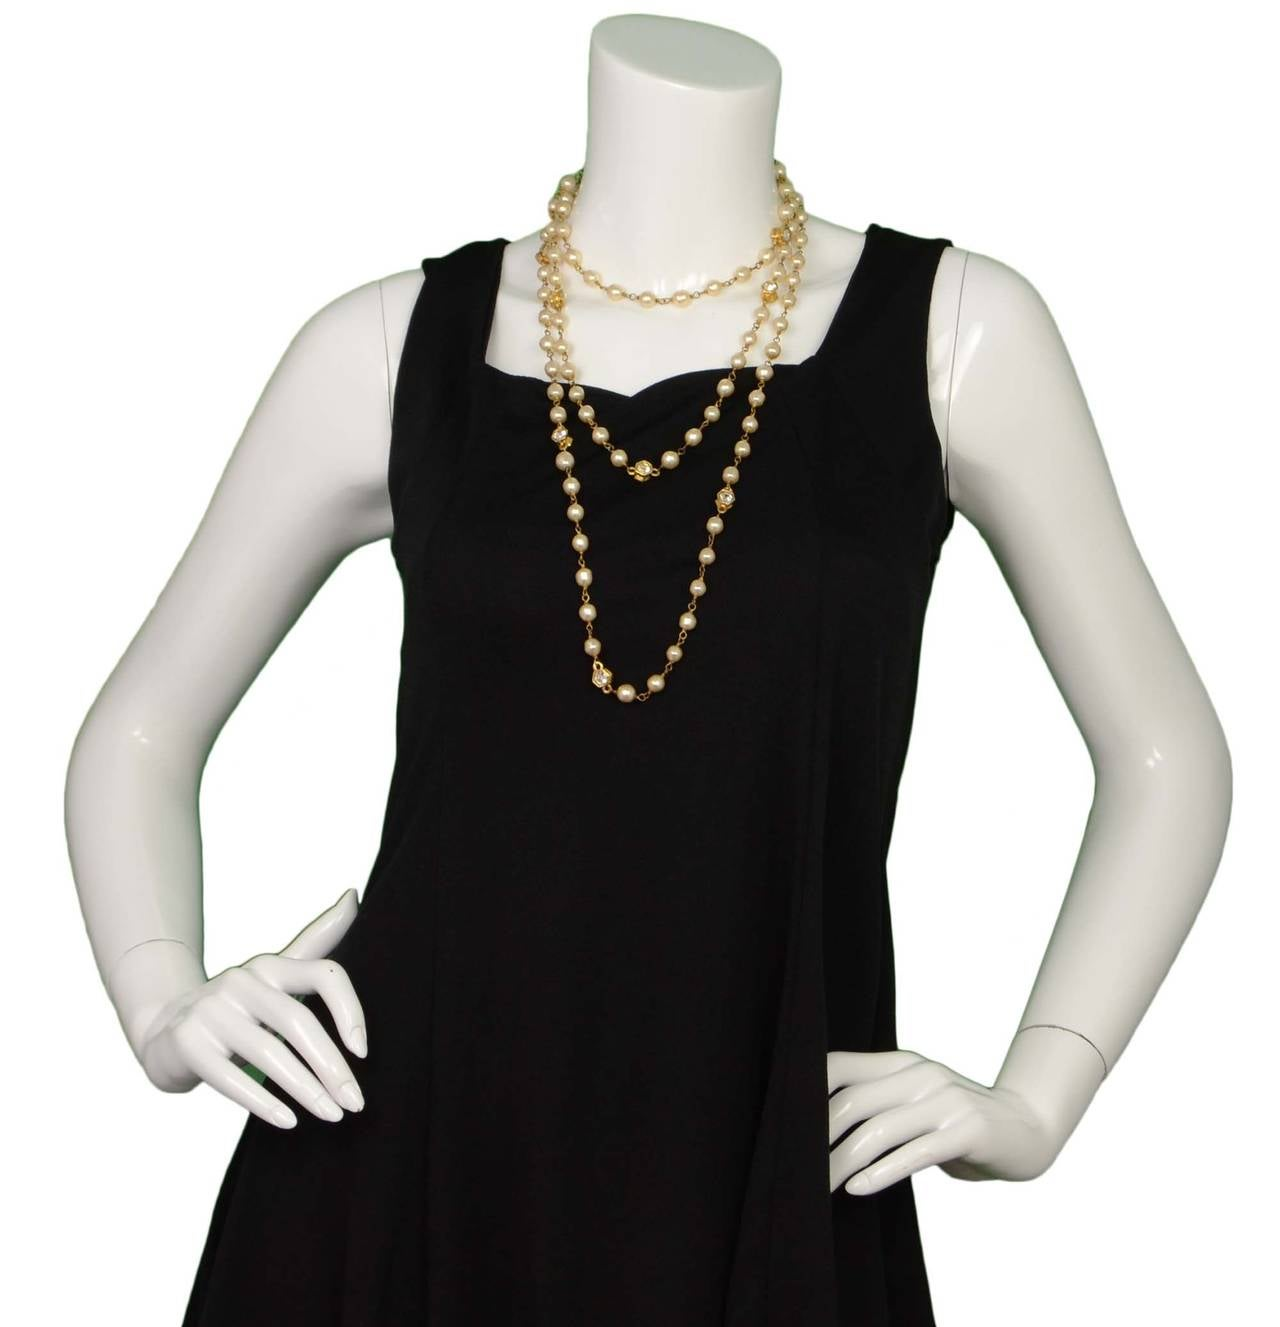 CHANEL Vintage 70's-80's Pearl & Hexagonal Crystal Long Necklace 9